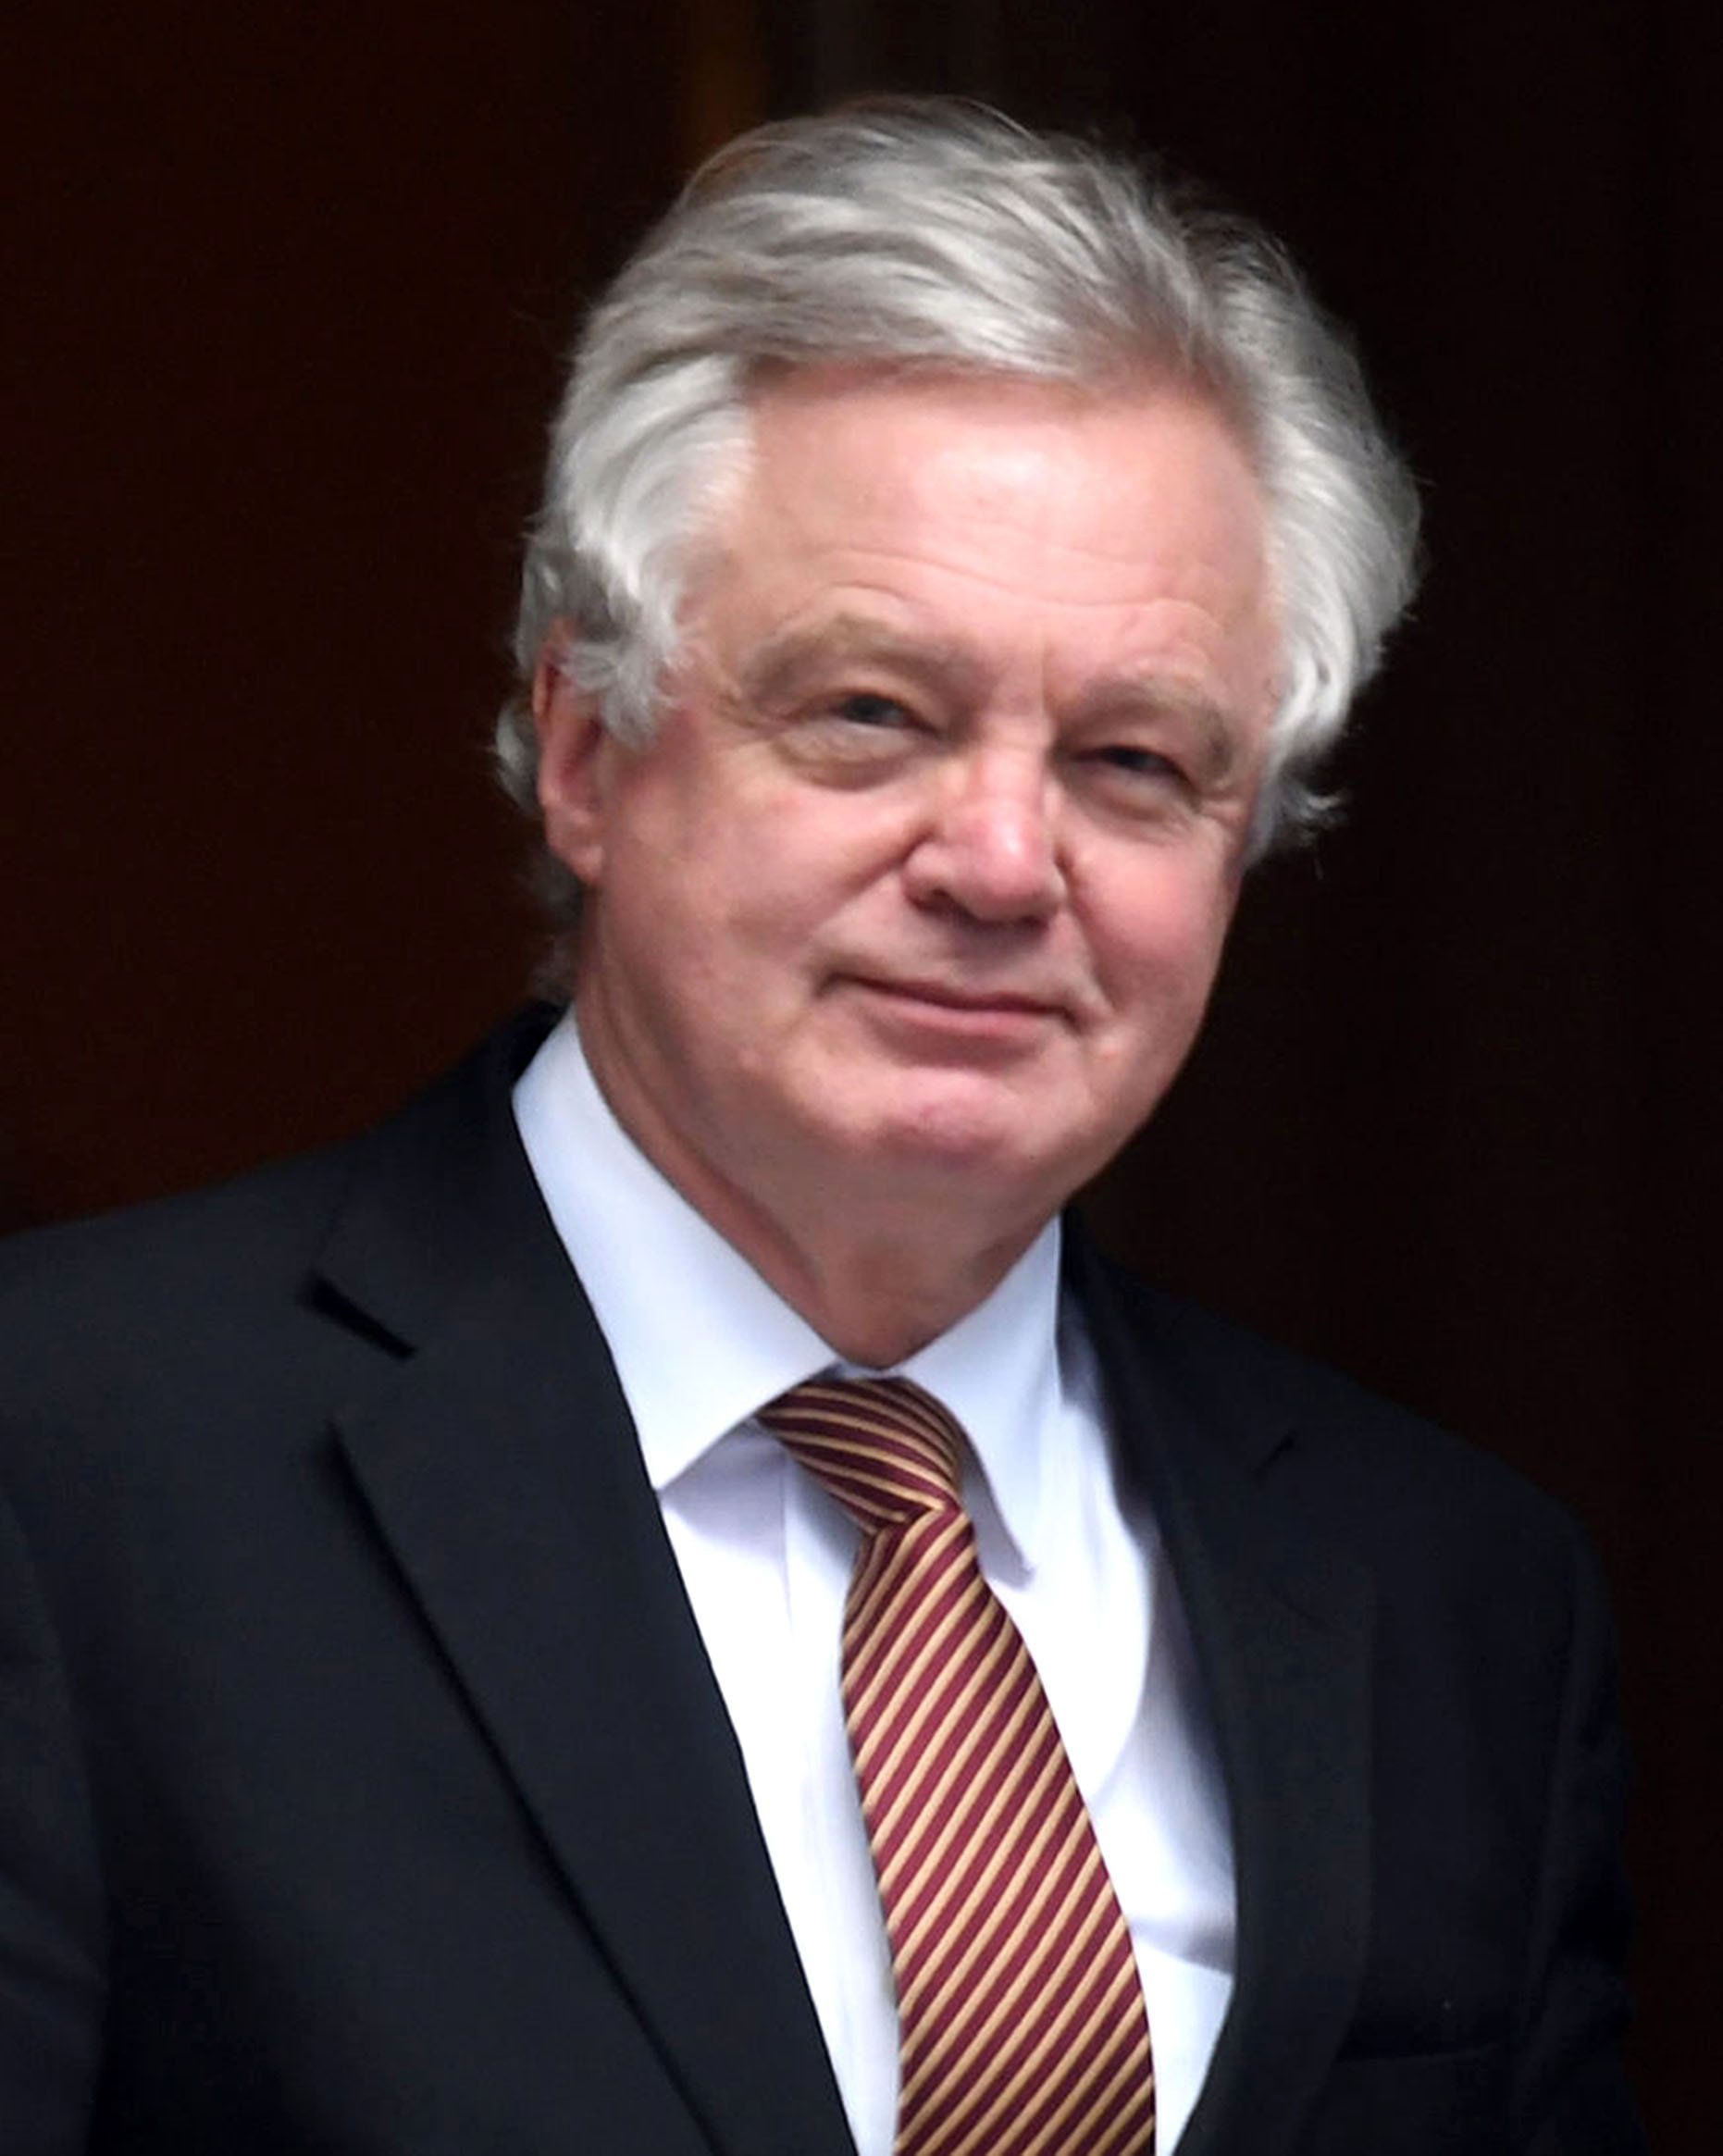 David Davis Slams 'Failed' Tory University And Housing Policies In 'Leadership'